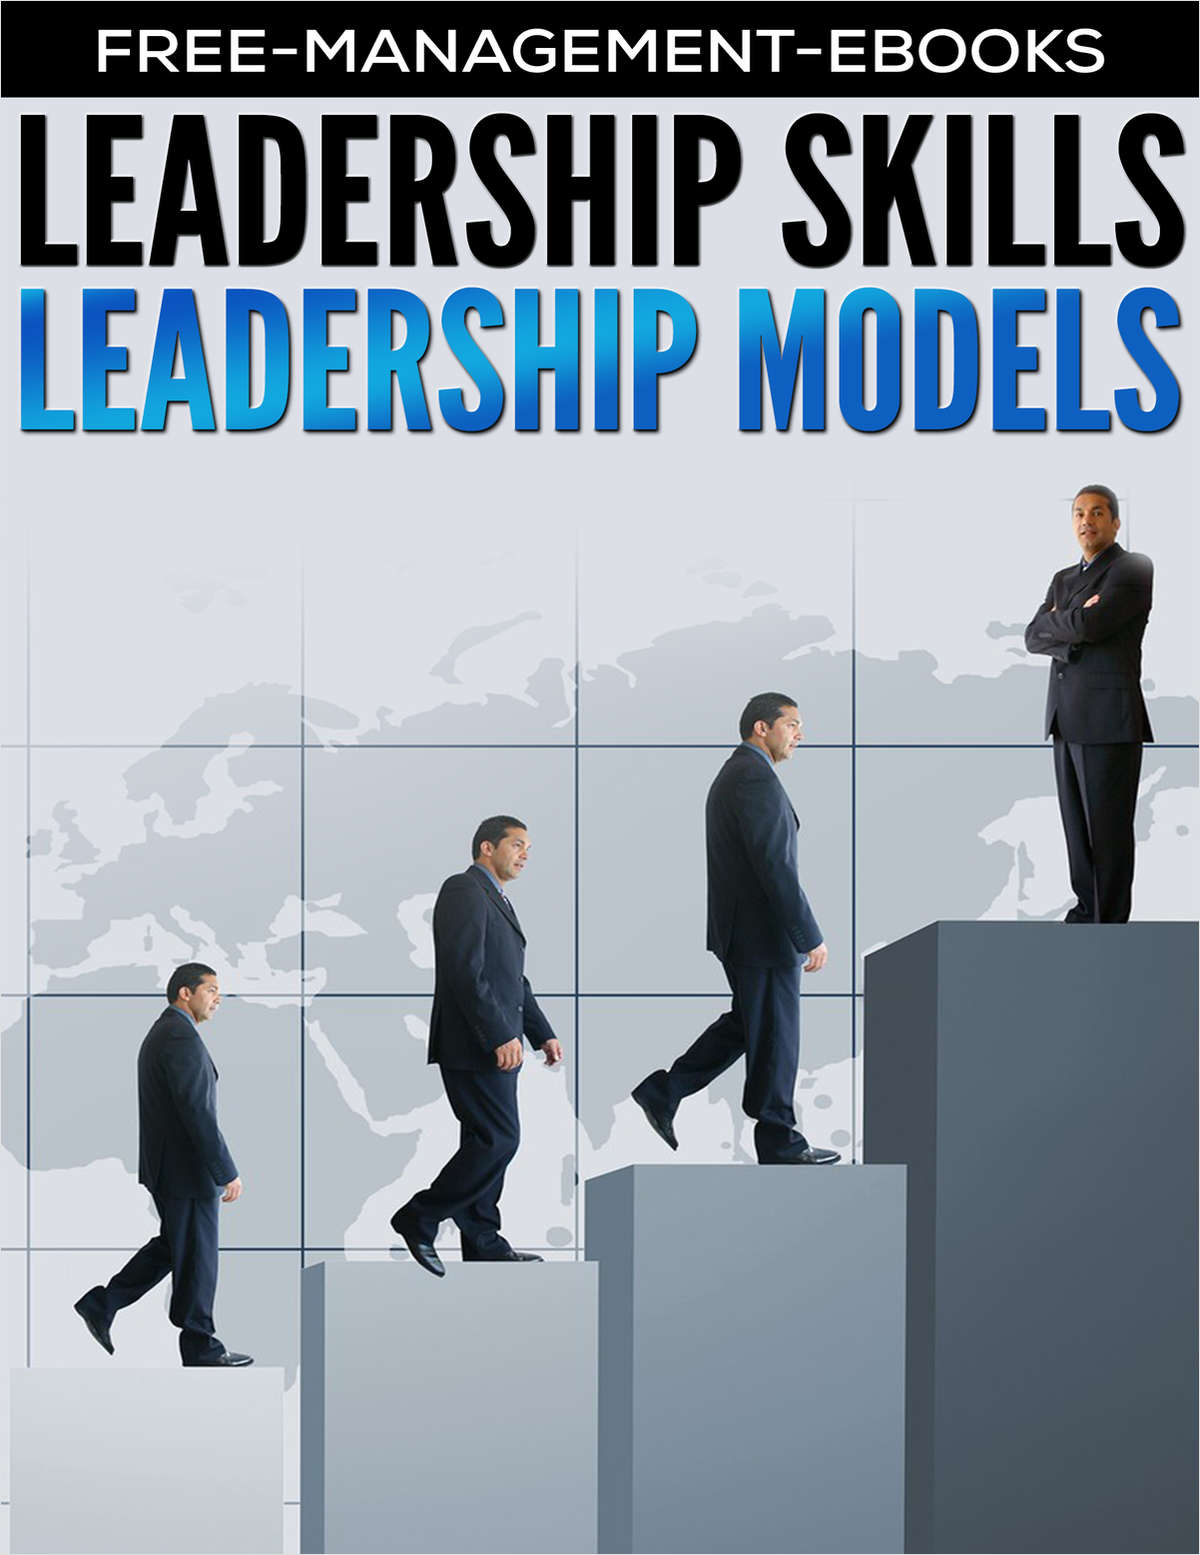 Leadership Models - Developing Your Leadership Skills